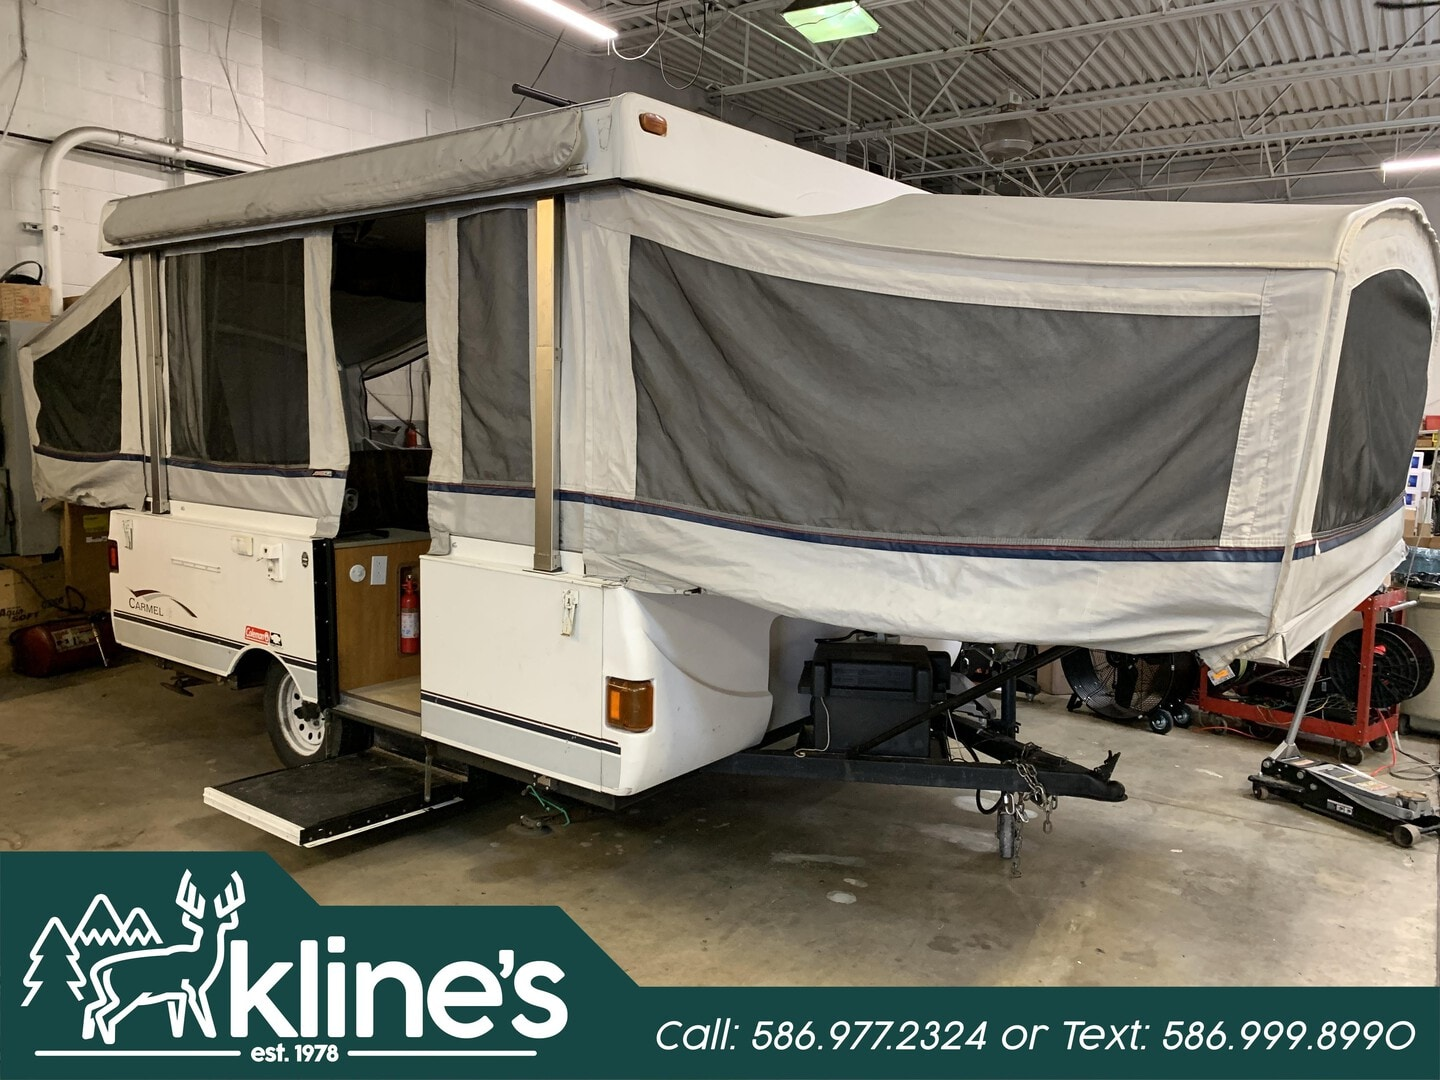 Used, 2004, Coleman Camping Trailers, Grand Tour series Carmel-3858, Pop-Up Campers